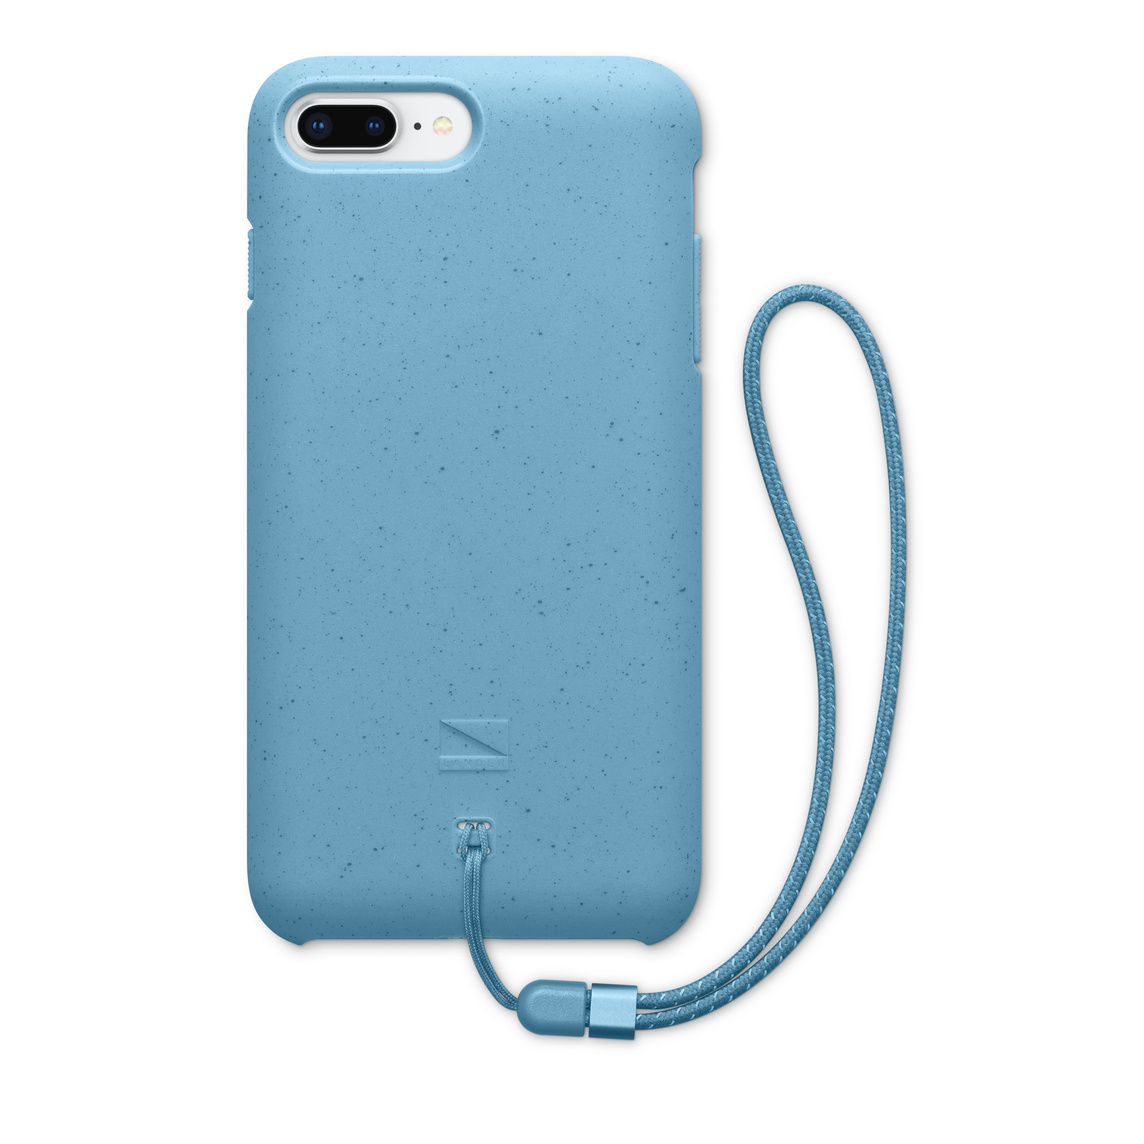 coque iphone 8 plus apple bleu nuit